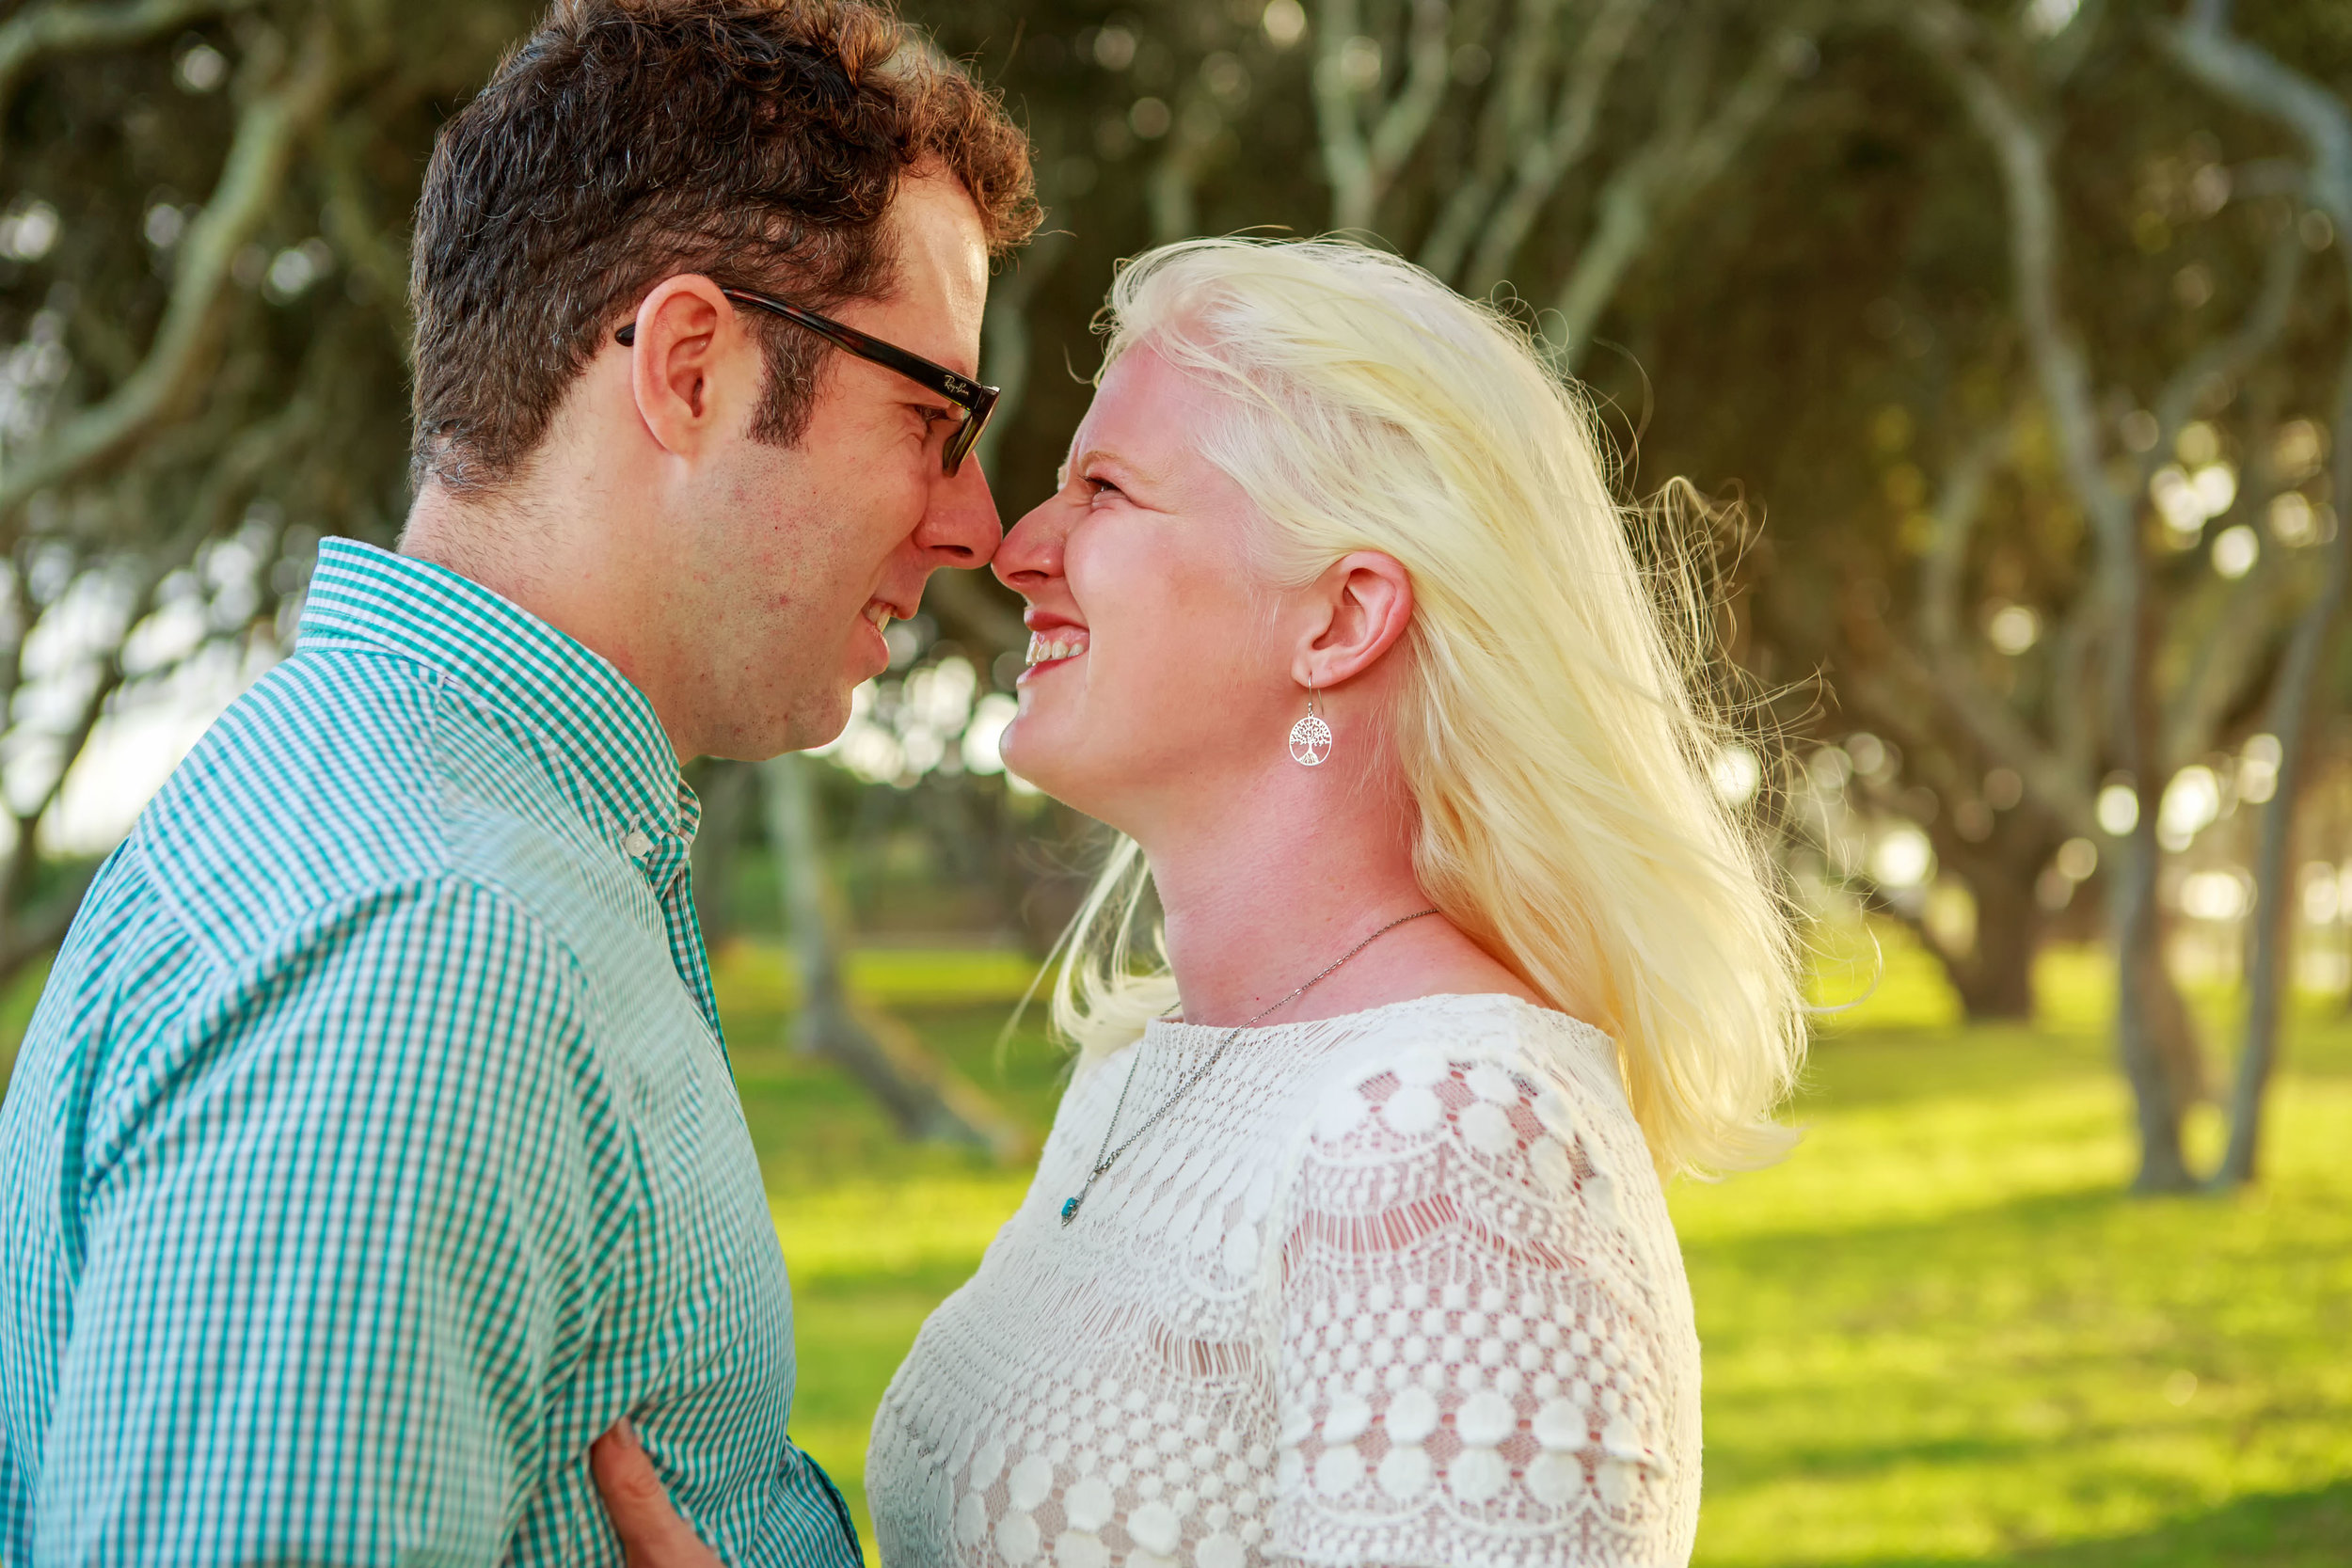 Fort_Fisher_Photographer_Engagement_Tiffany_Abruzzo_Photography_13.jpg